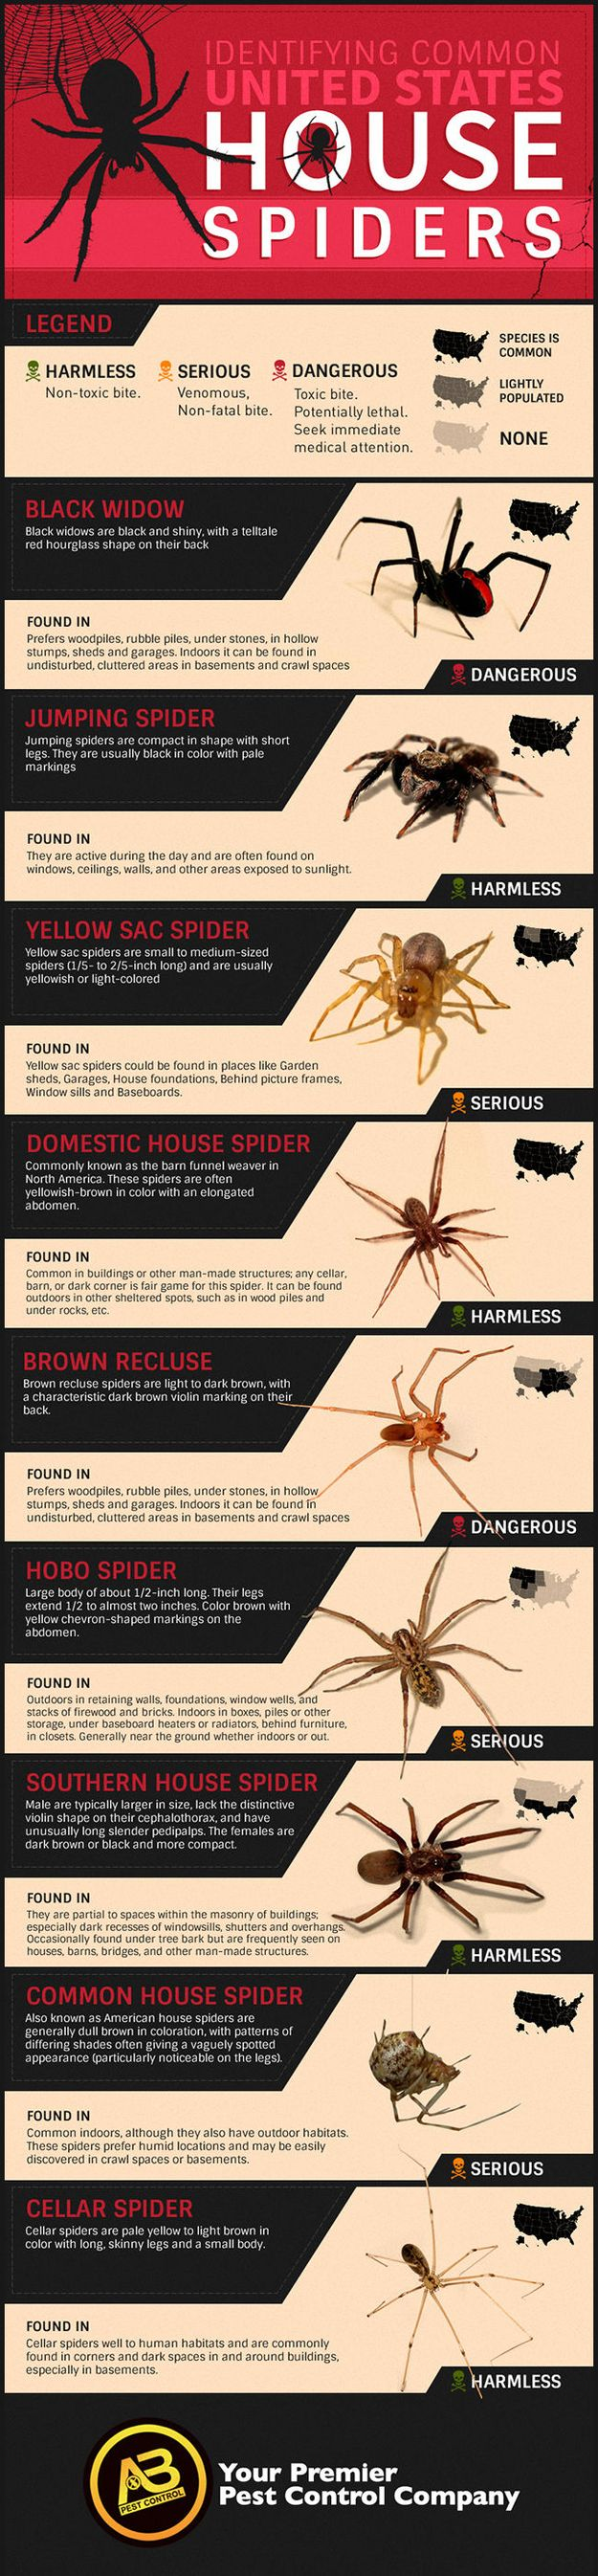 How To Identify Common Poisonous Spiders In Your Home #MedinaLibrary #Spiders #BuzzFeed